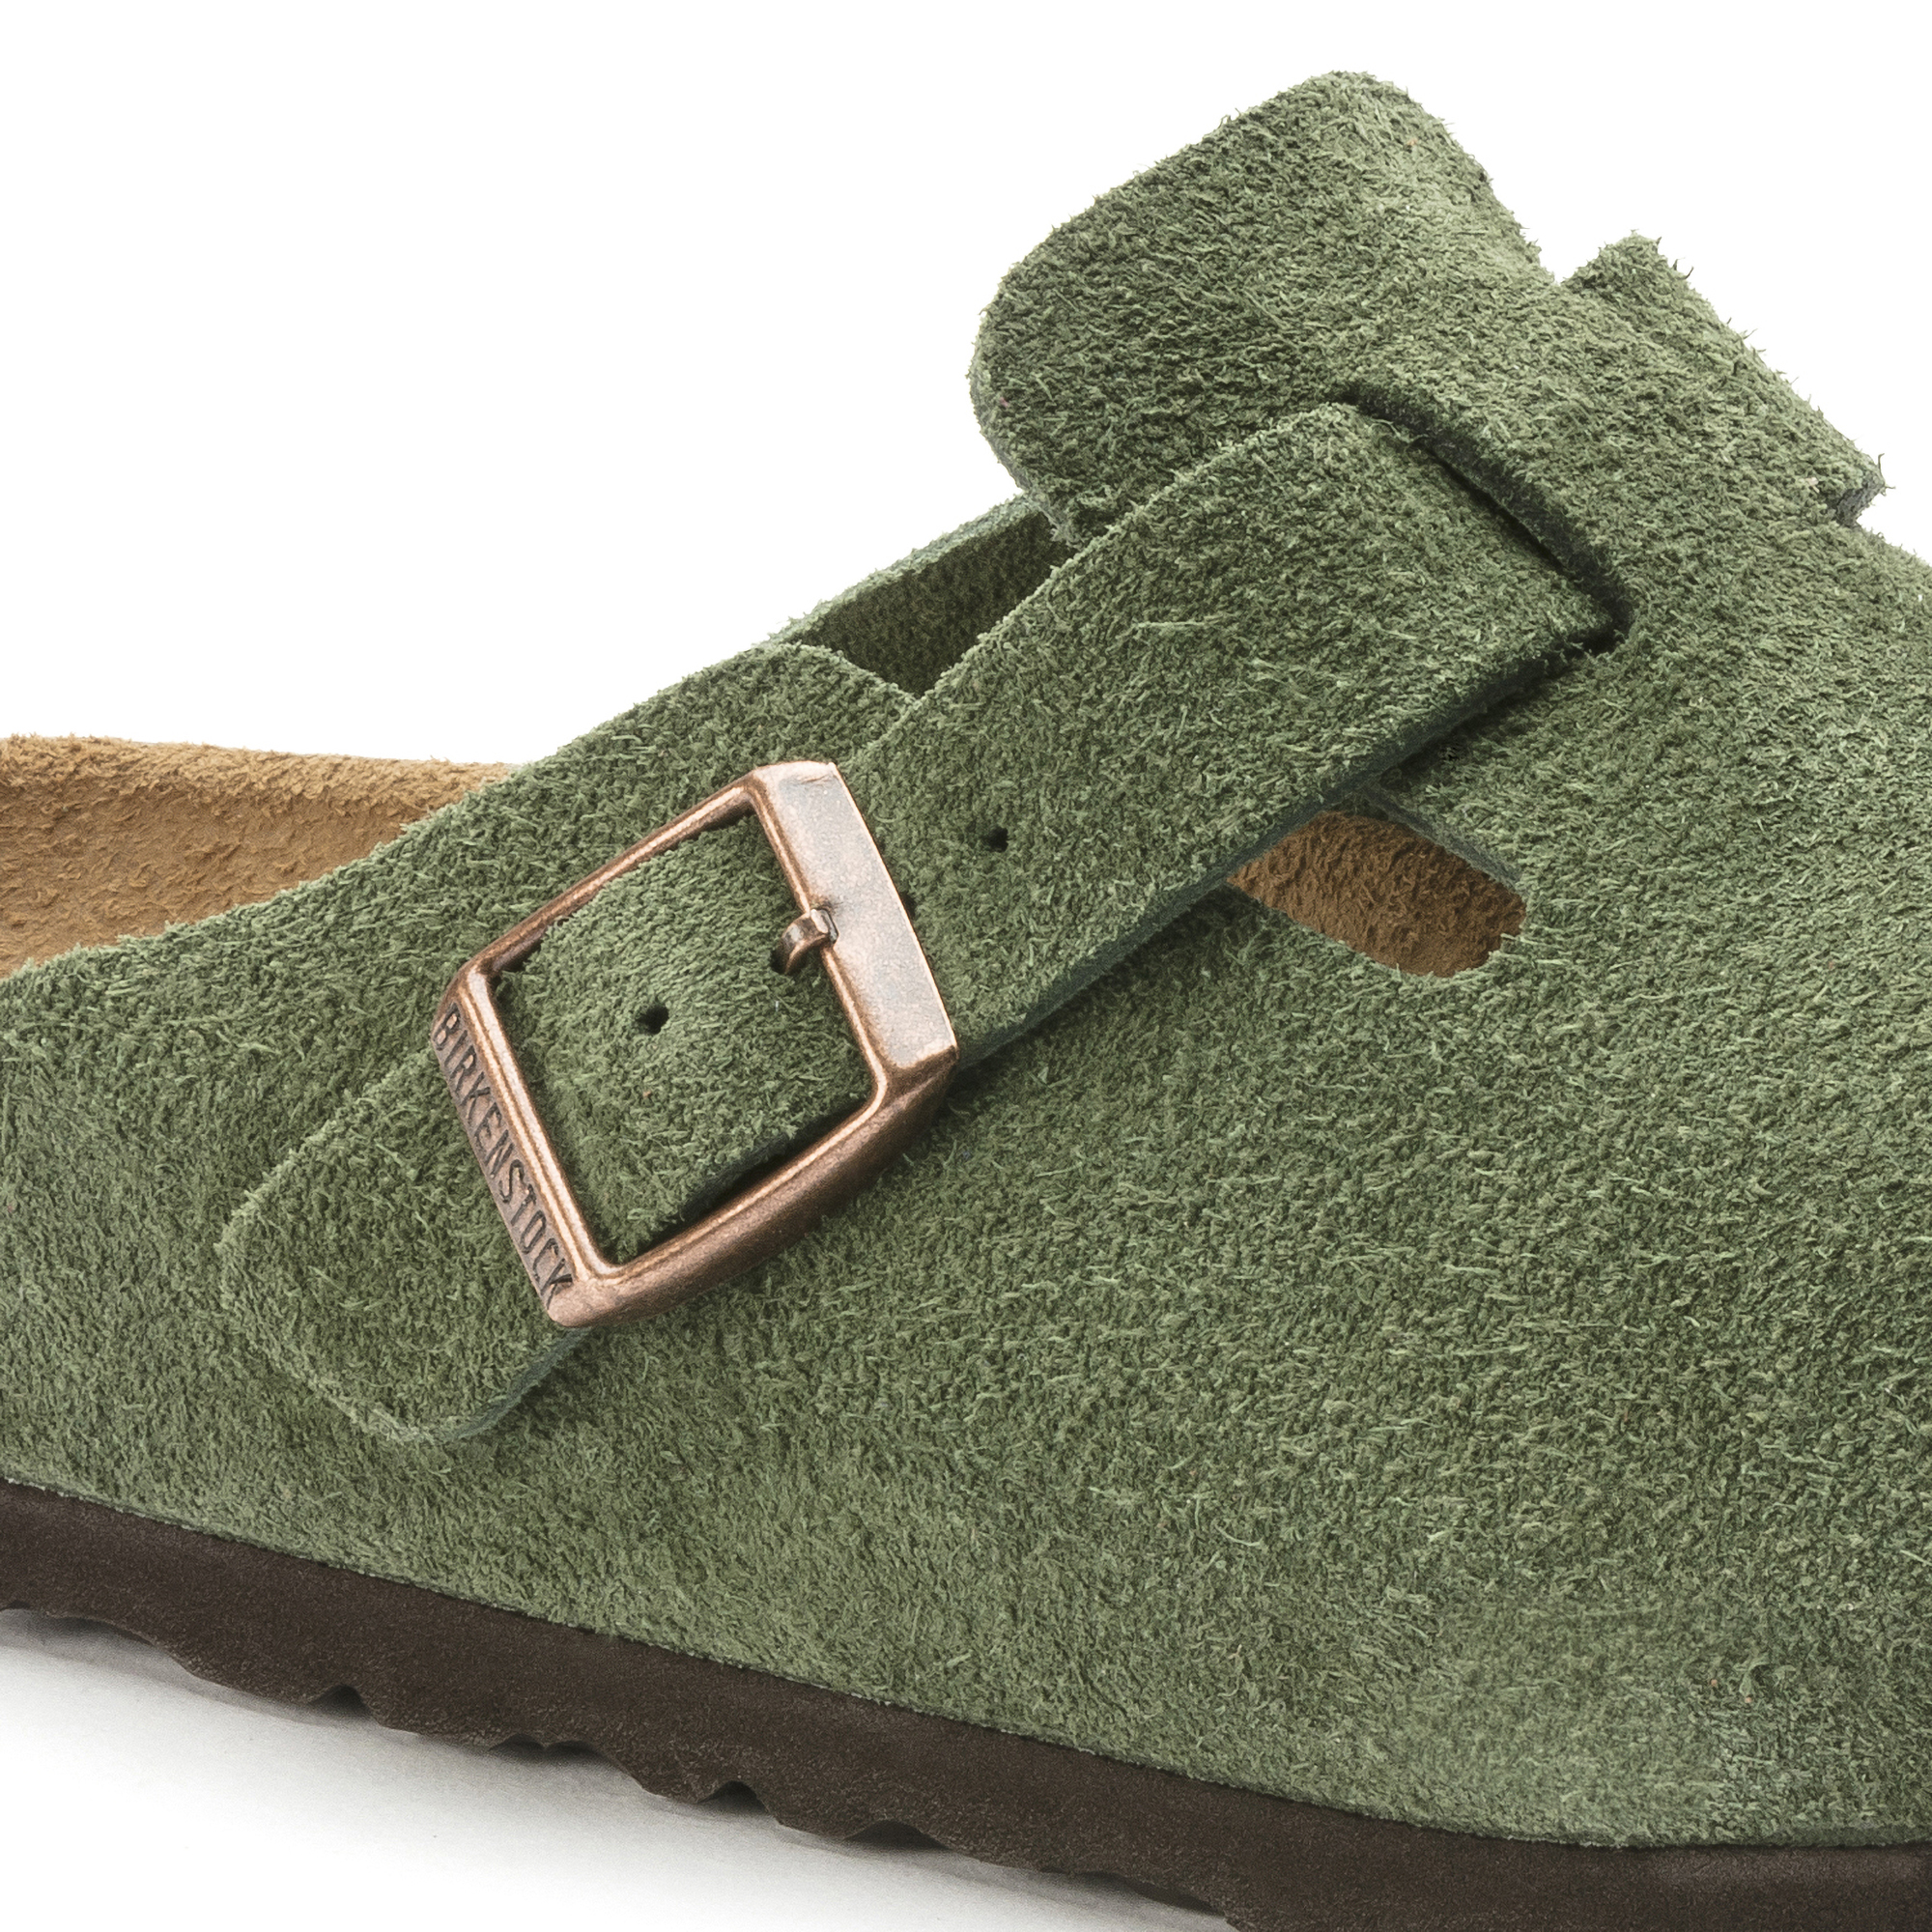 Boston Suede Leather Green   shop